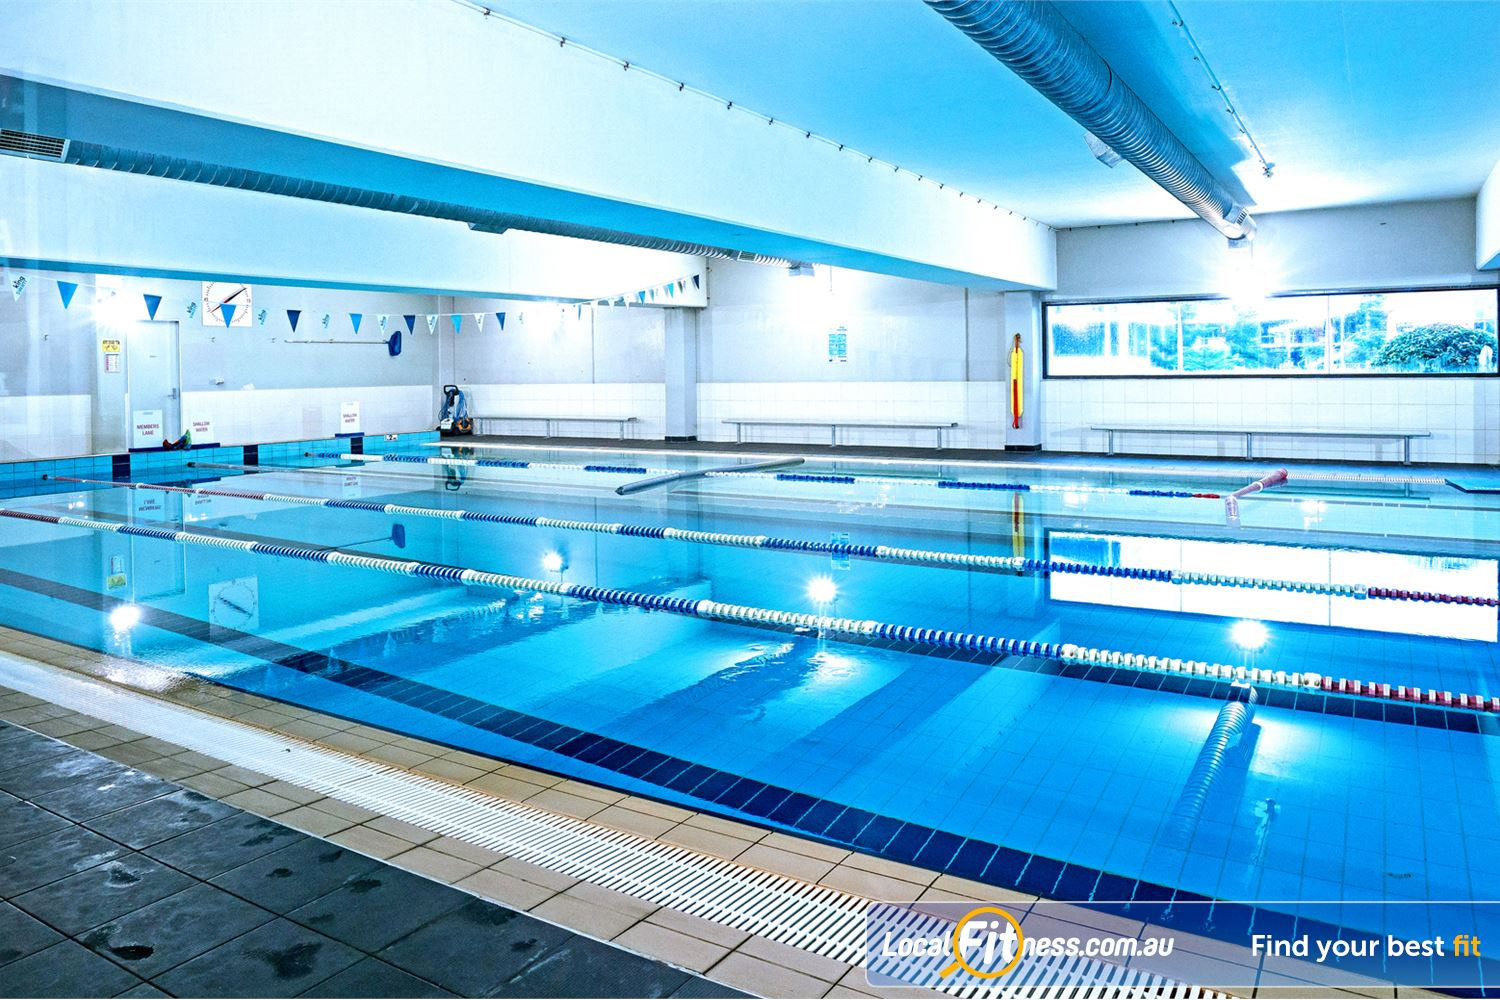 Fitness first robina gym free 1 day trial free 1 day trial for Fitness first gyms with swimming pools